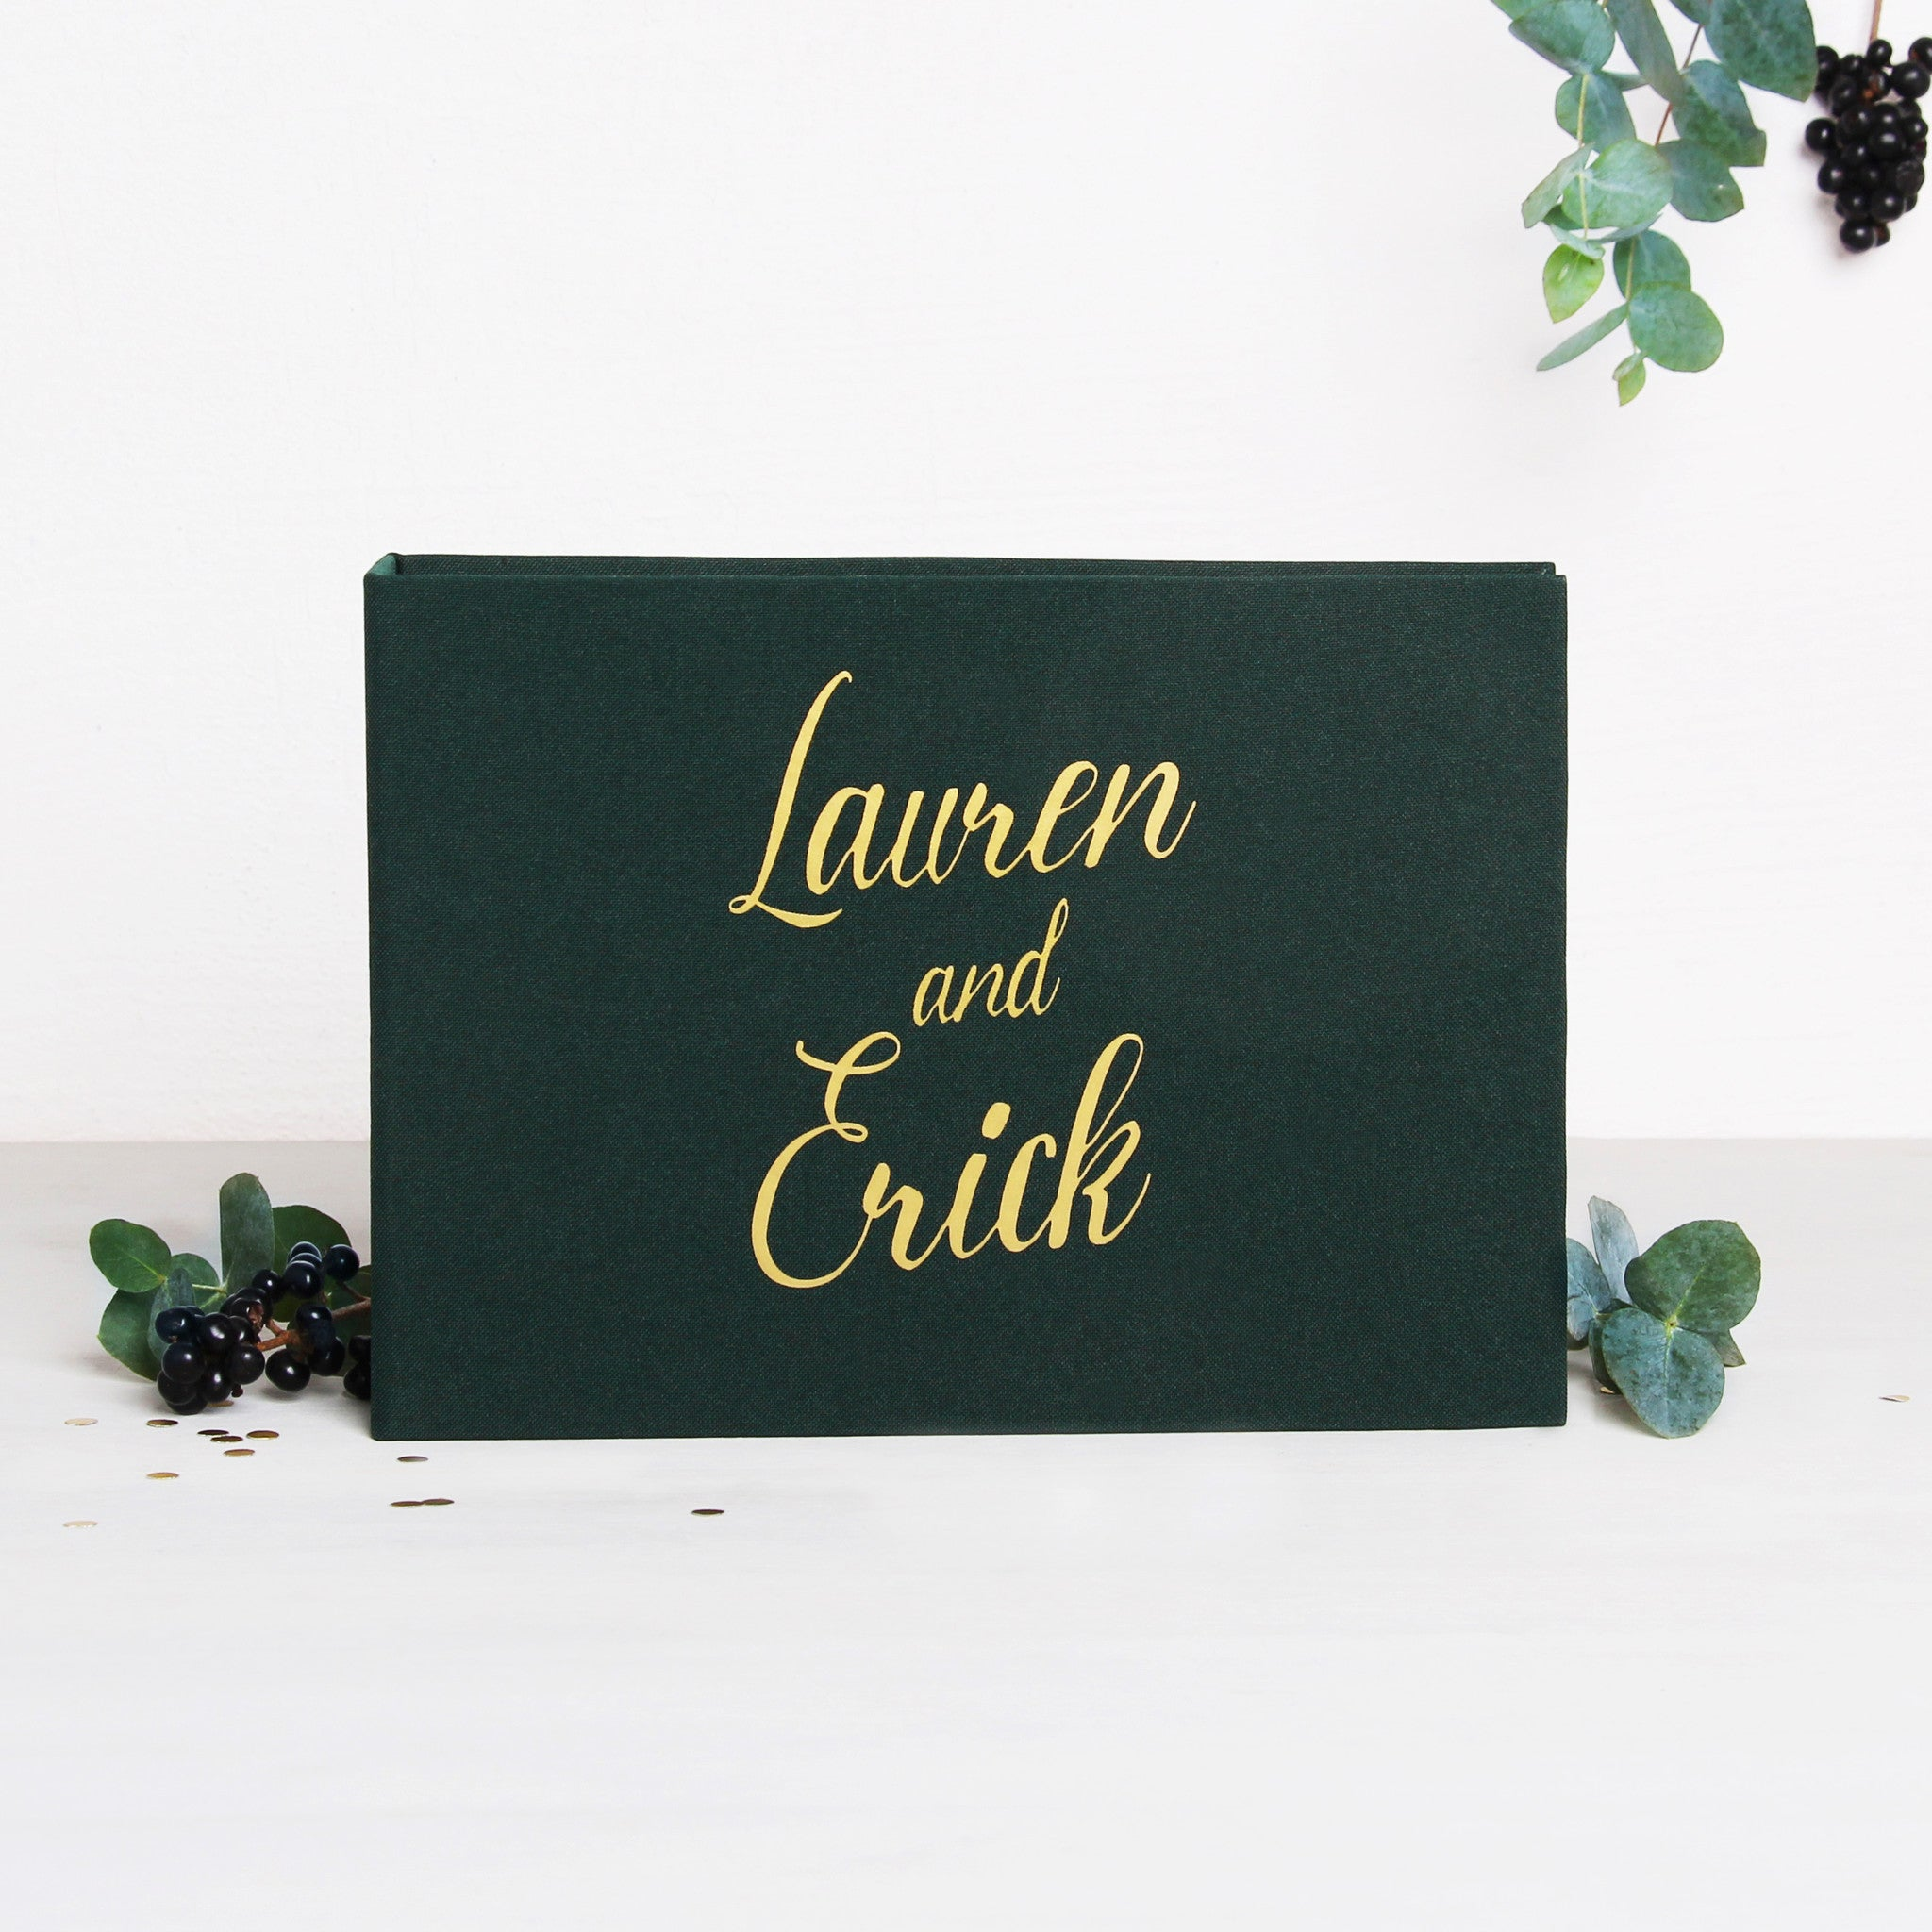 Instant Wedding Guest Book Album Forest Green with Gold Lettering - Liumy